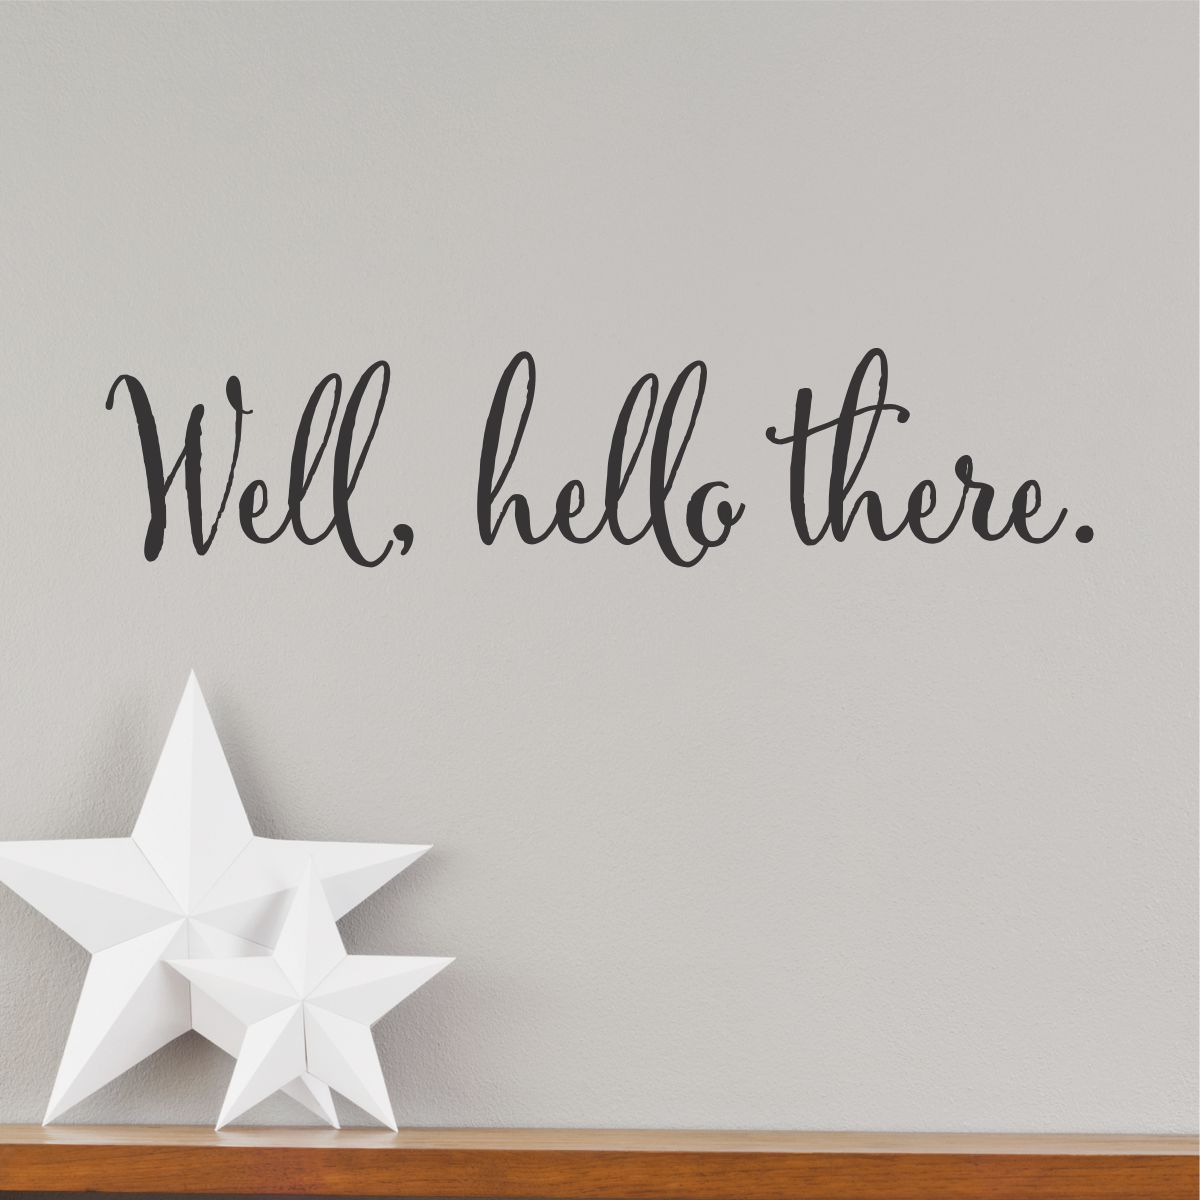 Well Hello There Wall Quotes Decal Wallquotes Com